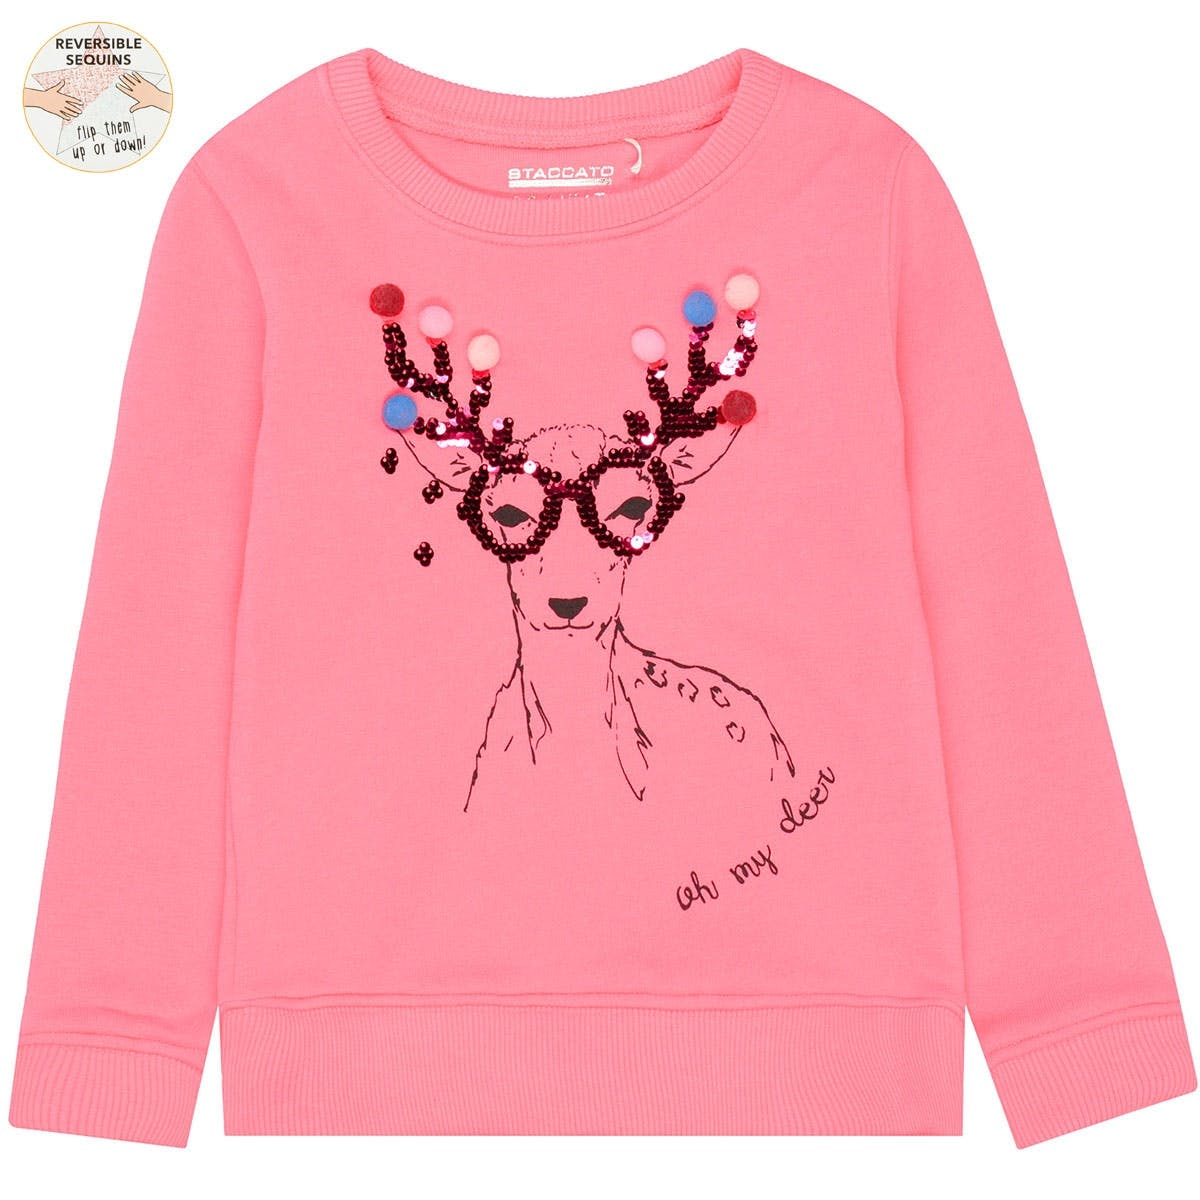 WENDEPAILLETTEN Sweatshirt Rentier - Flash Pink